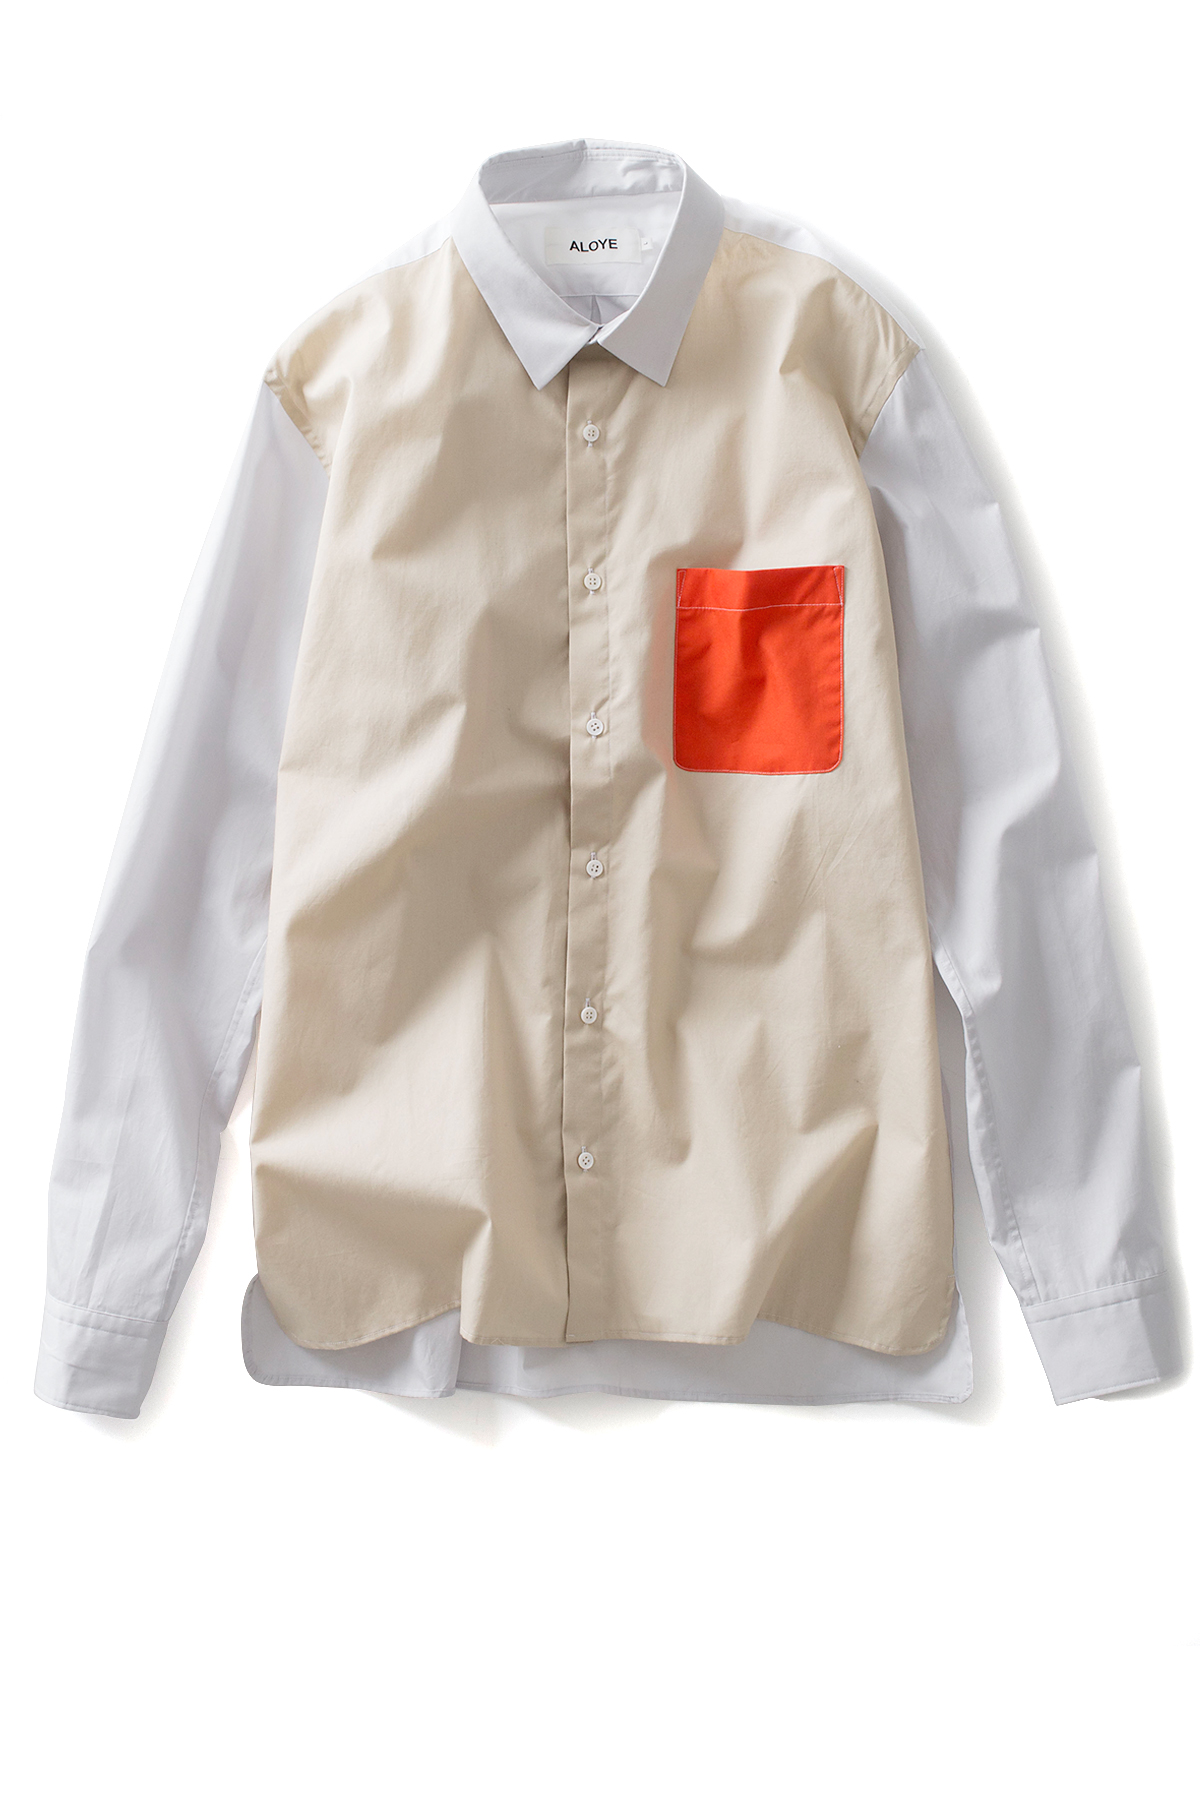 ALOYE : Color Blocks - Long Sleeve Shirts (Off White / Orange)